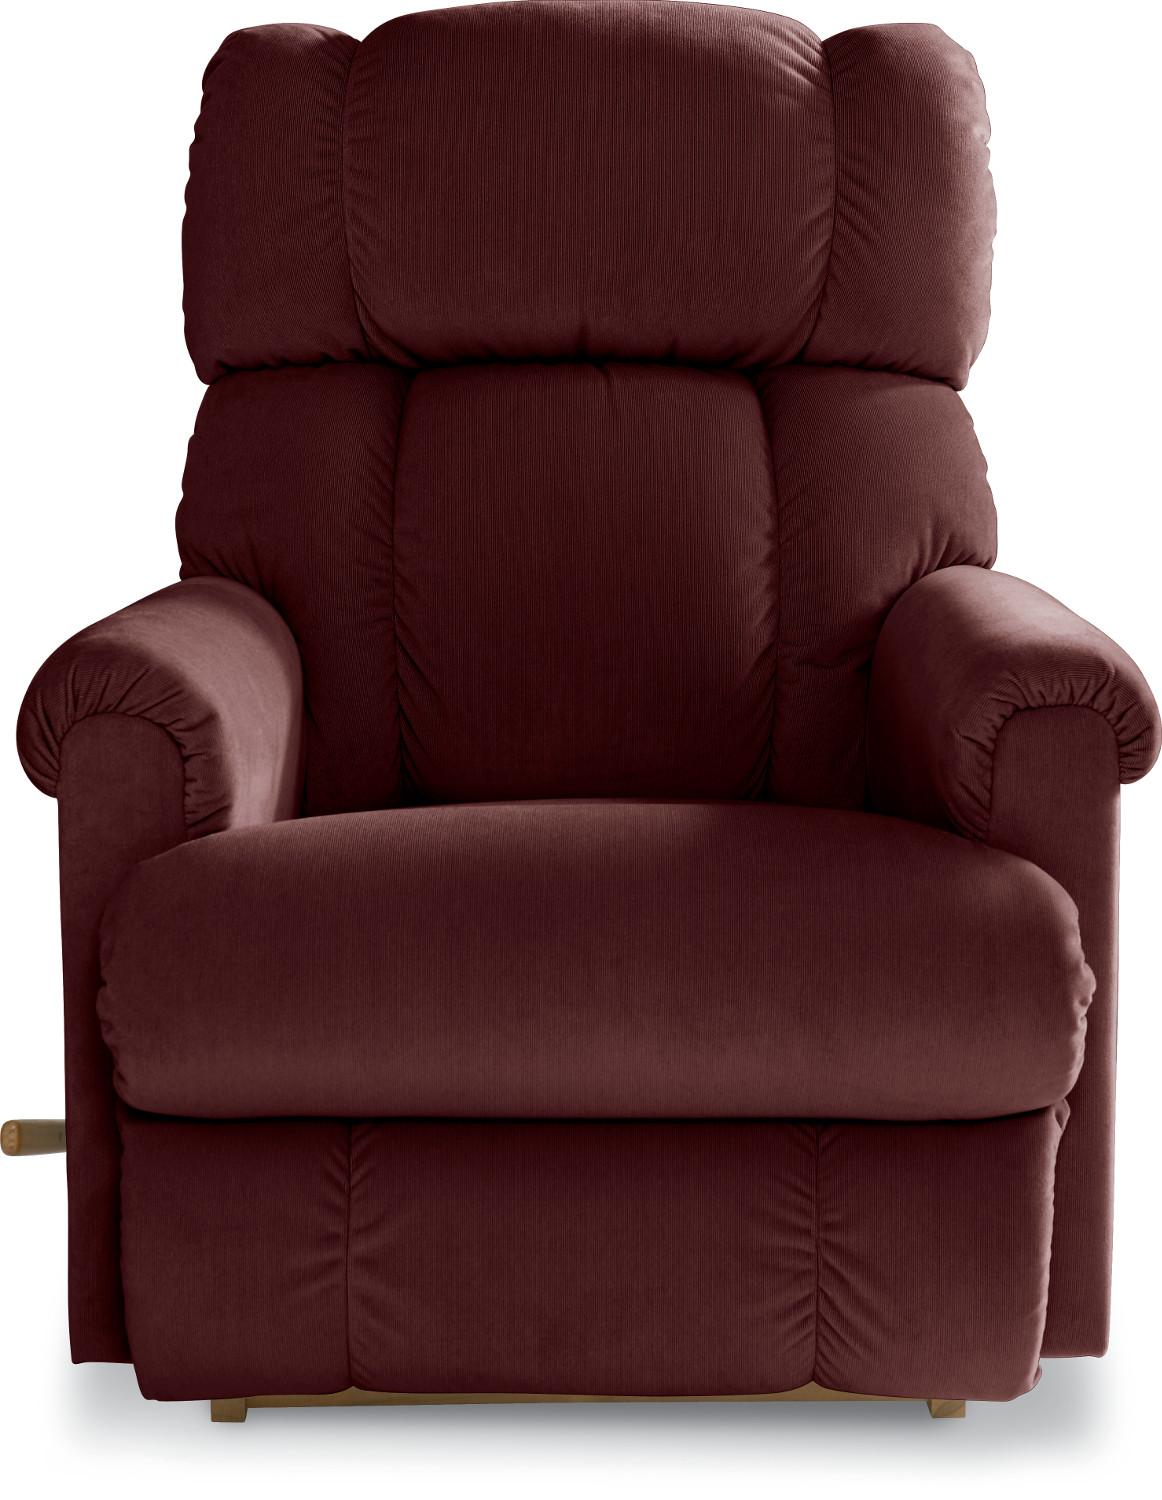 Pinnacle Rocking Recliner by La-Z-Boy at Bullard Furniture